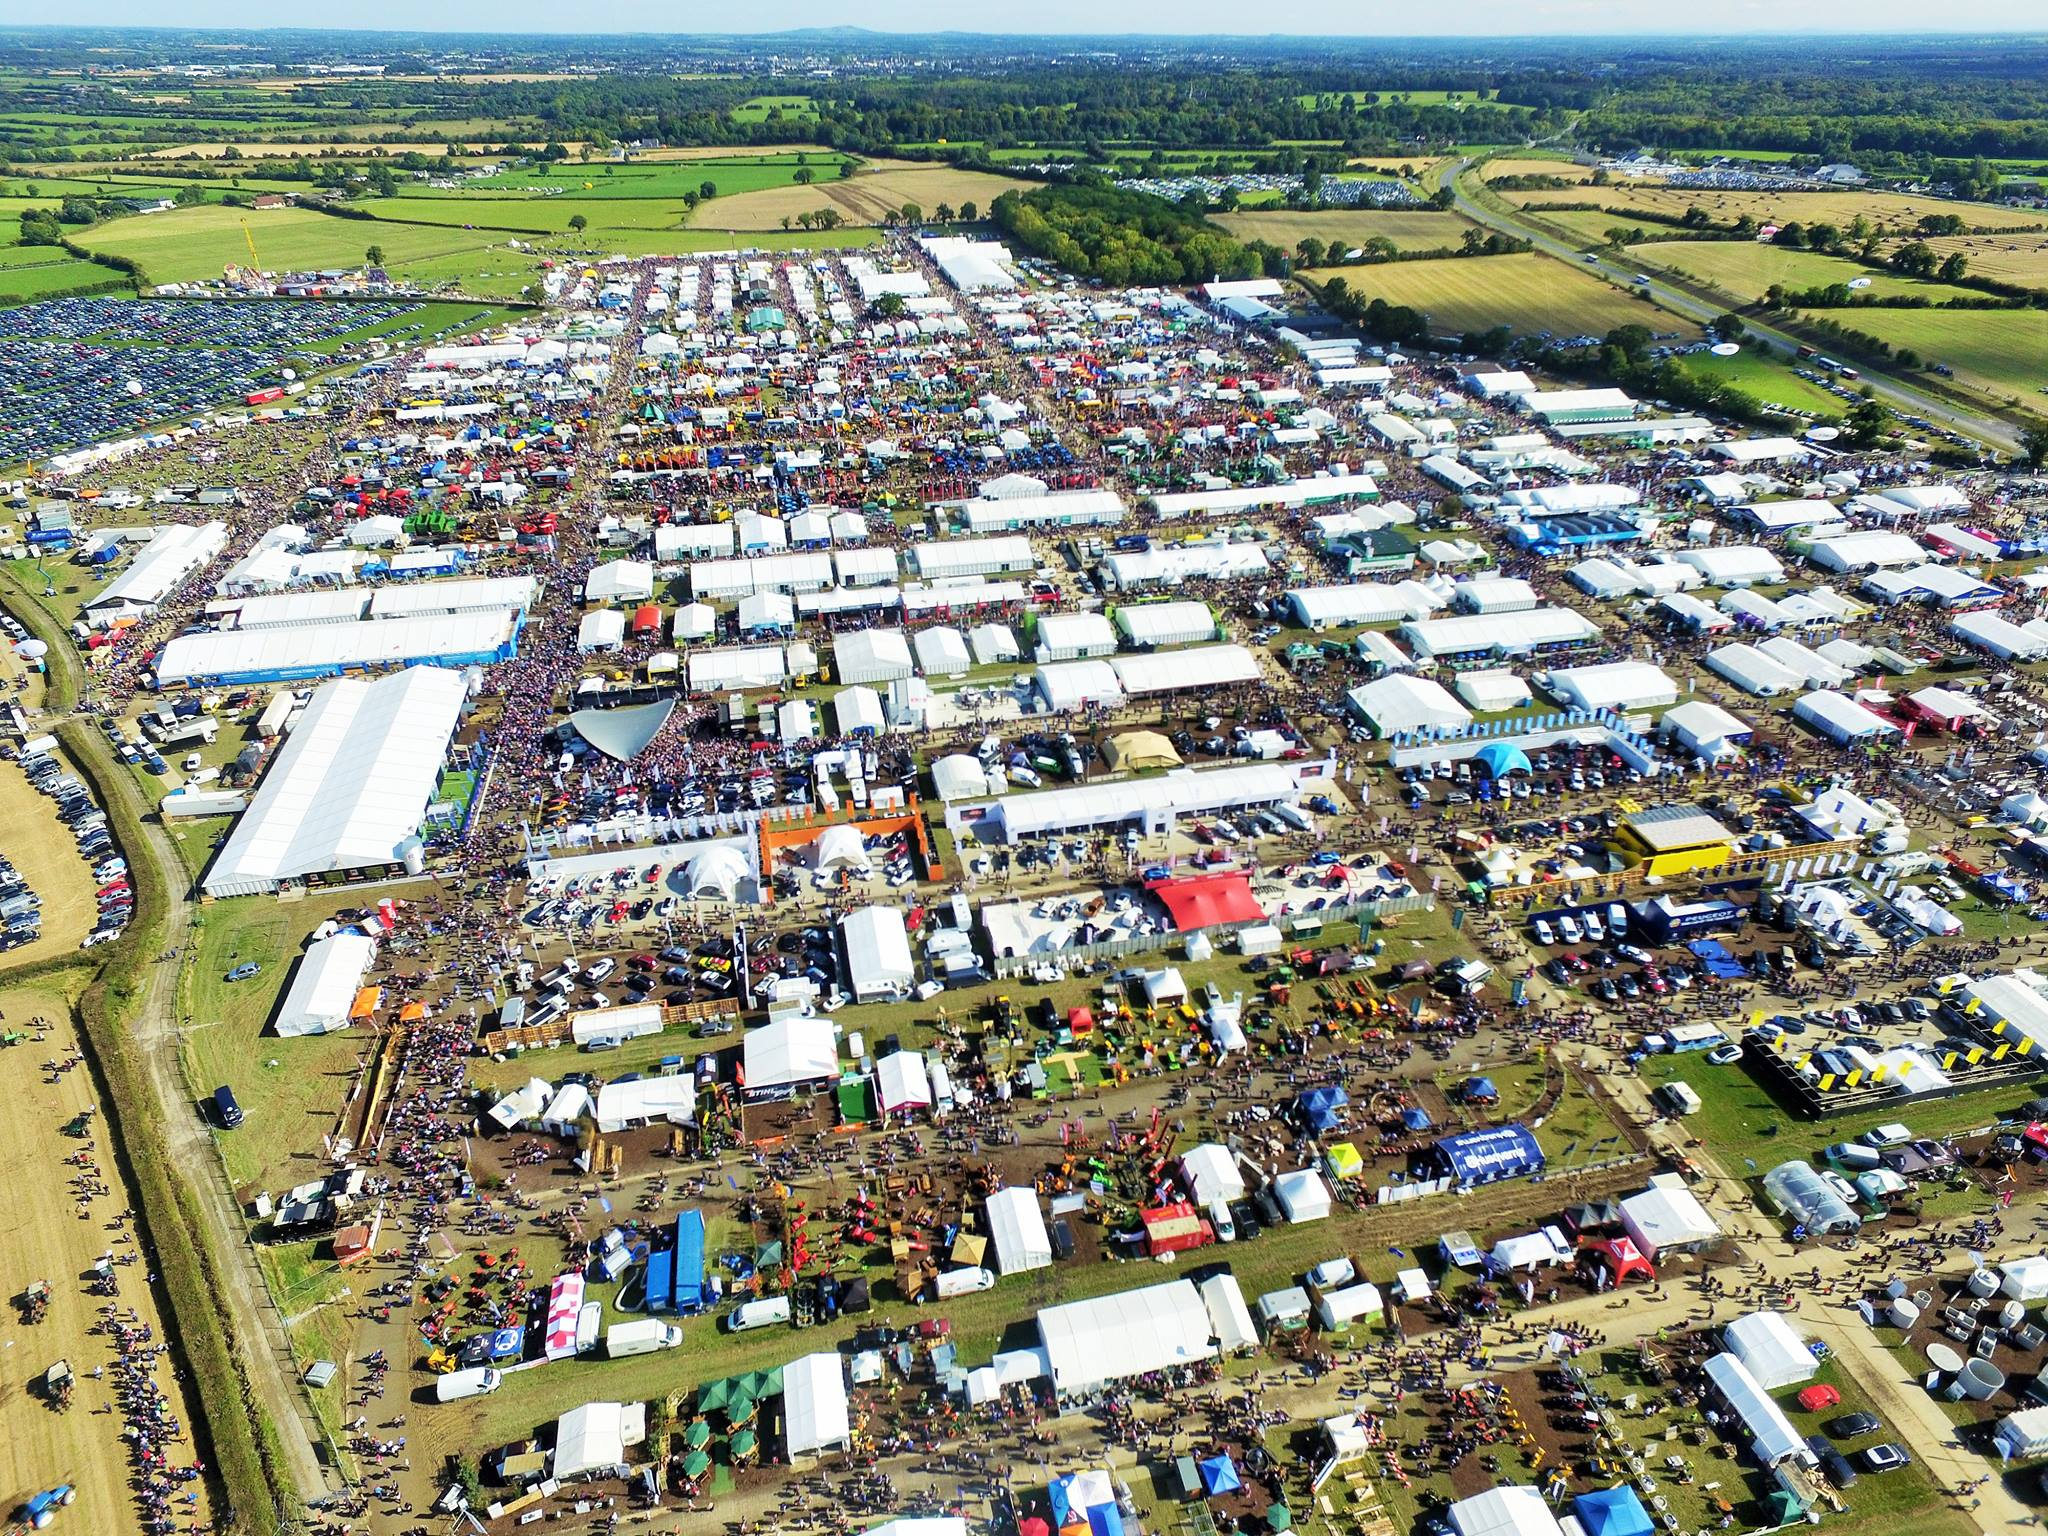 National Ploughing Championships, Agricultural Show,